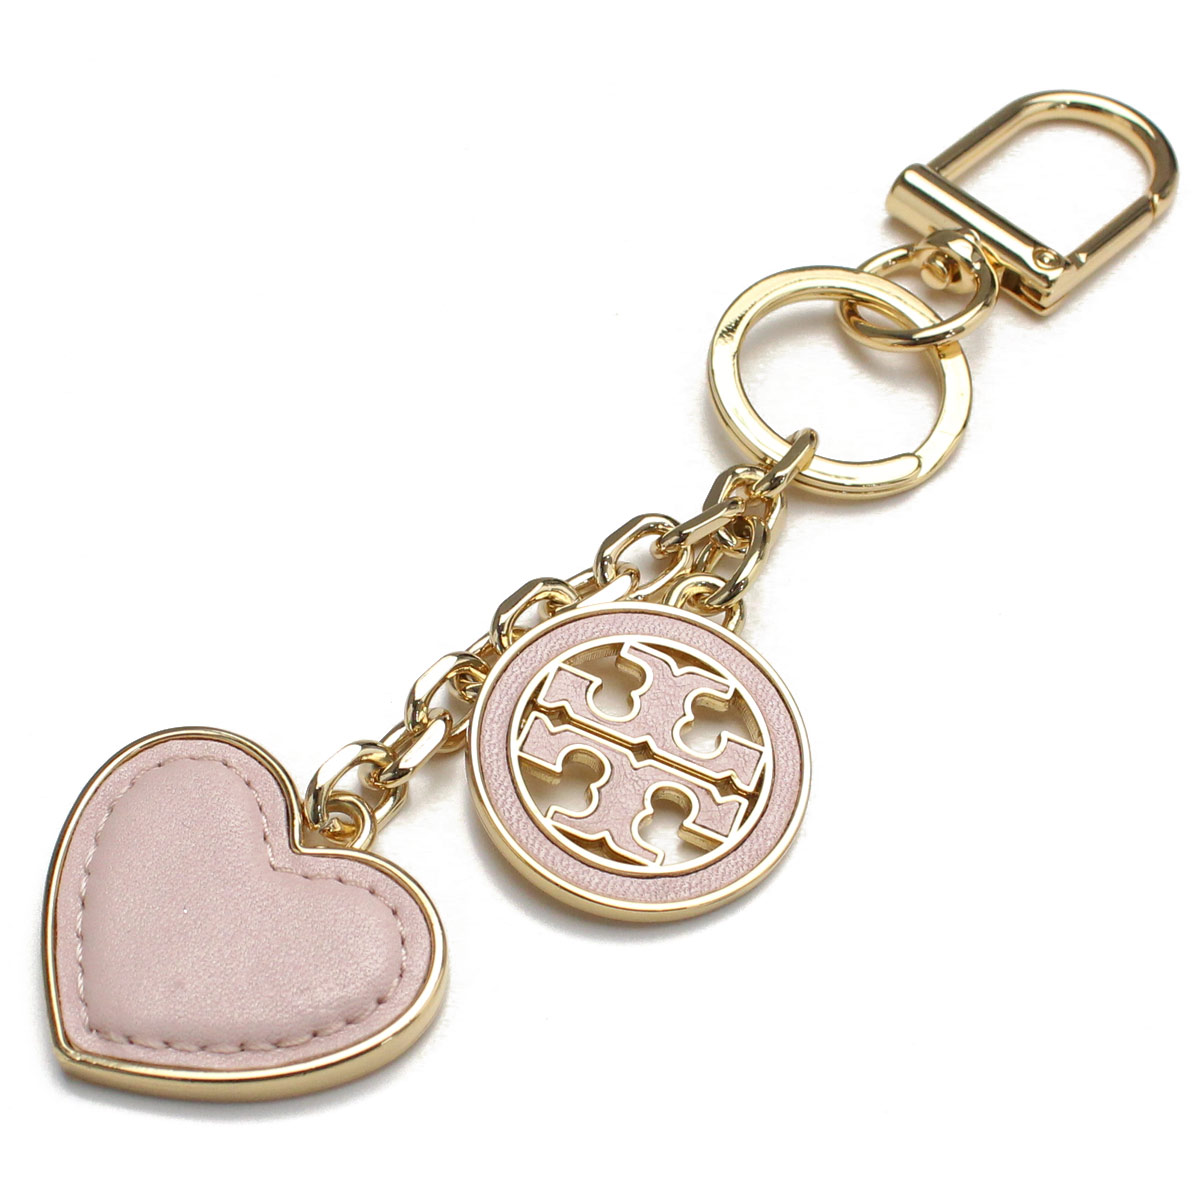 470bb70b4a60 Bighit The total brand wholesale  Tolly Birch TORY BURCH key ring KEY FOBS  key ring 42569 652 SHELL PINK pink system